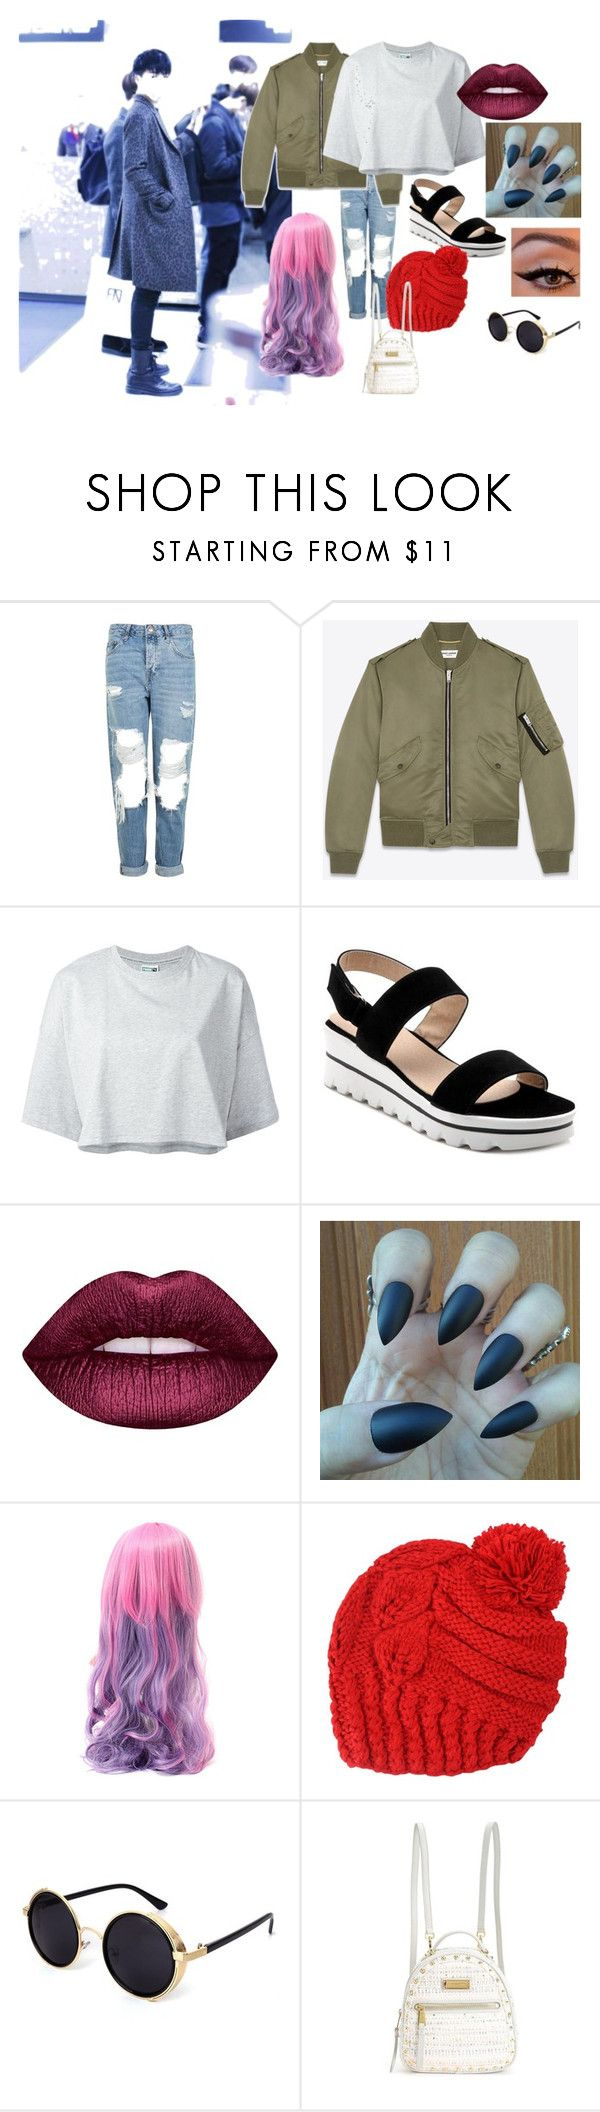 """June June"" by mandalinaqitrydewi on Polyvore featuring Topshop, Yves Saint Laurent, Puma, Lime Crime and Juicy Couture"